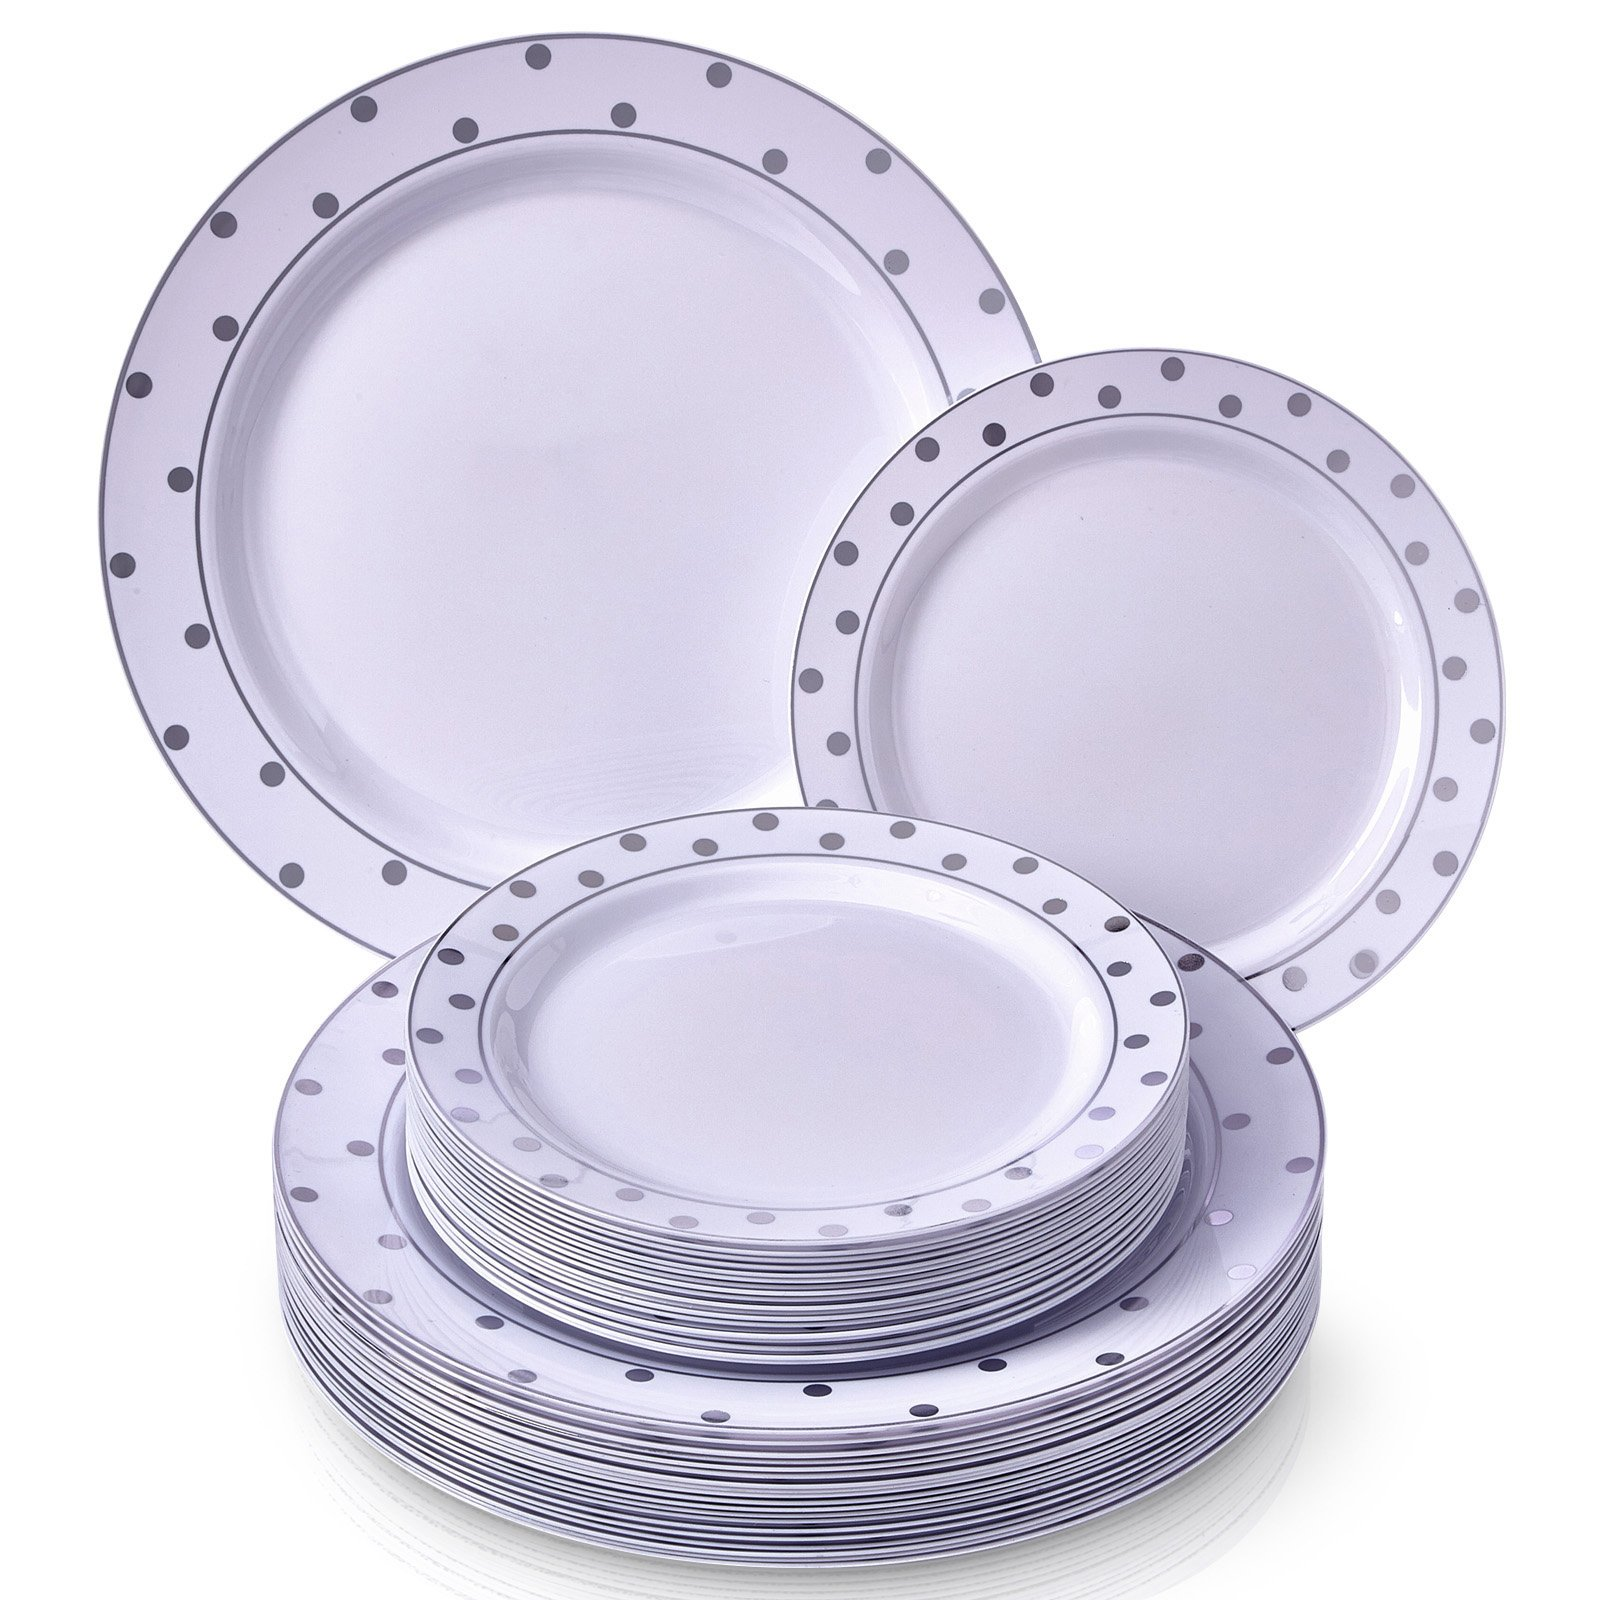 ELEGANT DISPOSABLE 240 PC DINNERWARE SET | 120 Dinner Plates and 120 Dessert Plates | Heavy Duty Disposable Plastic Dishes | Elegant Fine China Look | for Upscale Wedding and Dining (Charming Dots Col